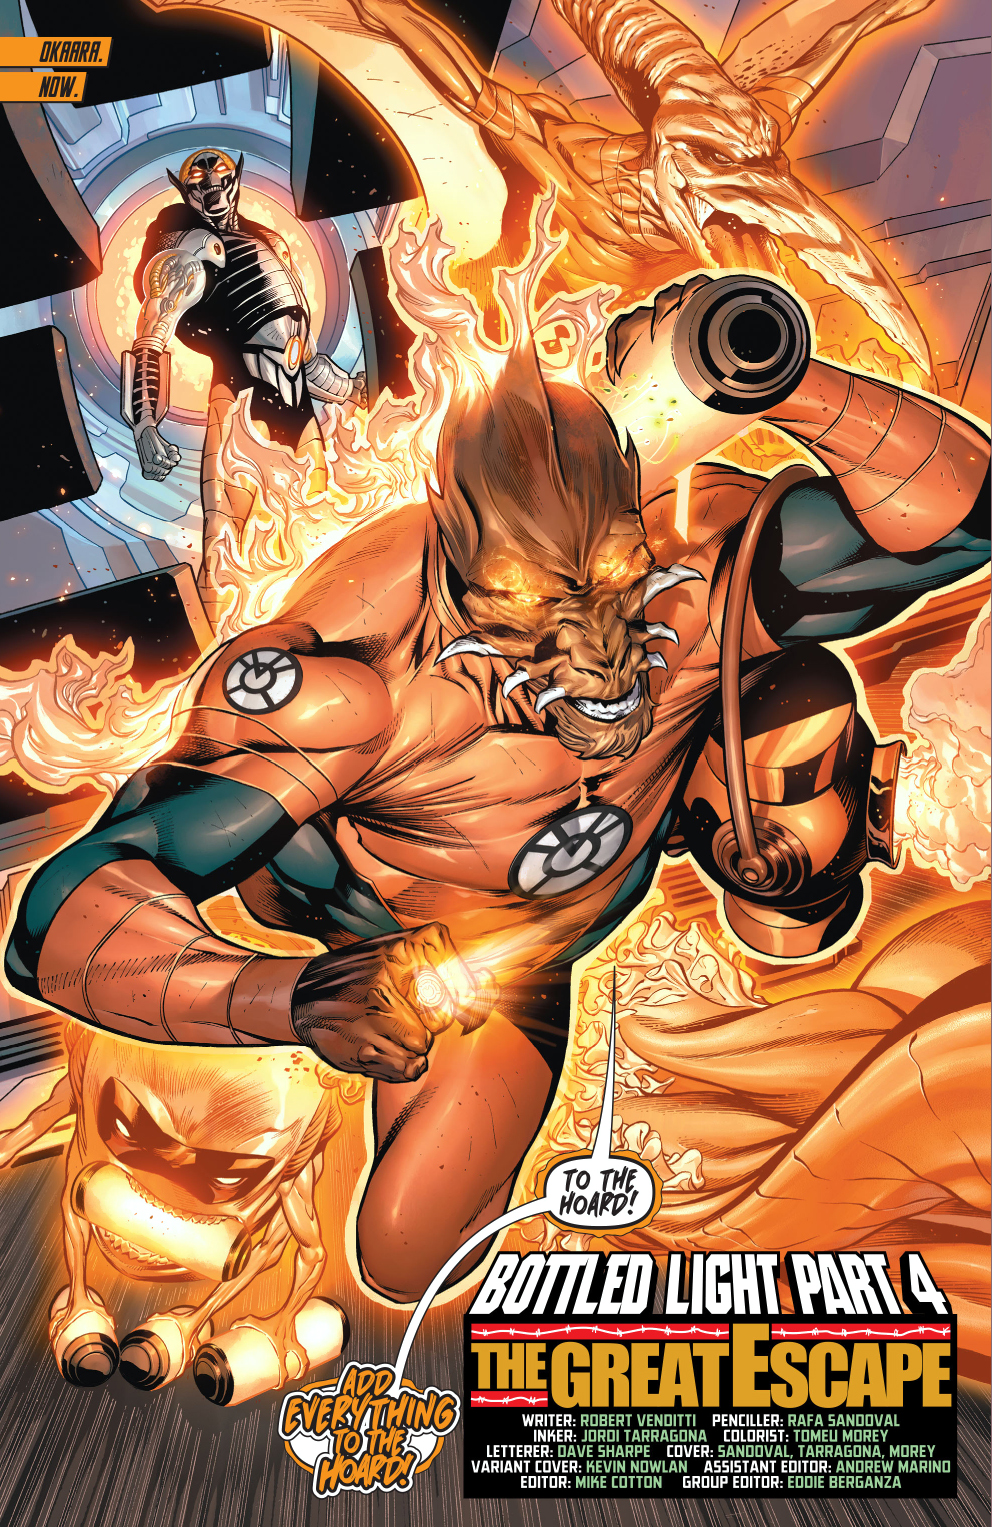 From – Hal Jordan and the Green Lantern Corps Vol. 1 #10